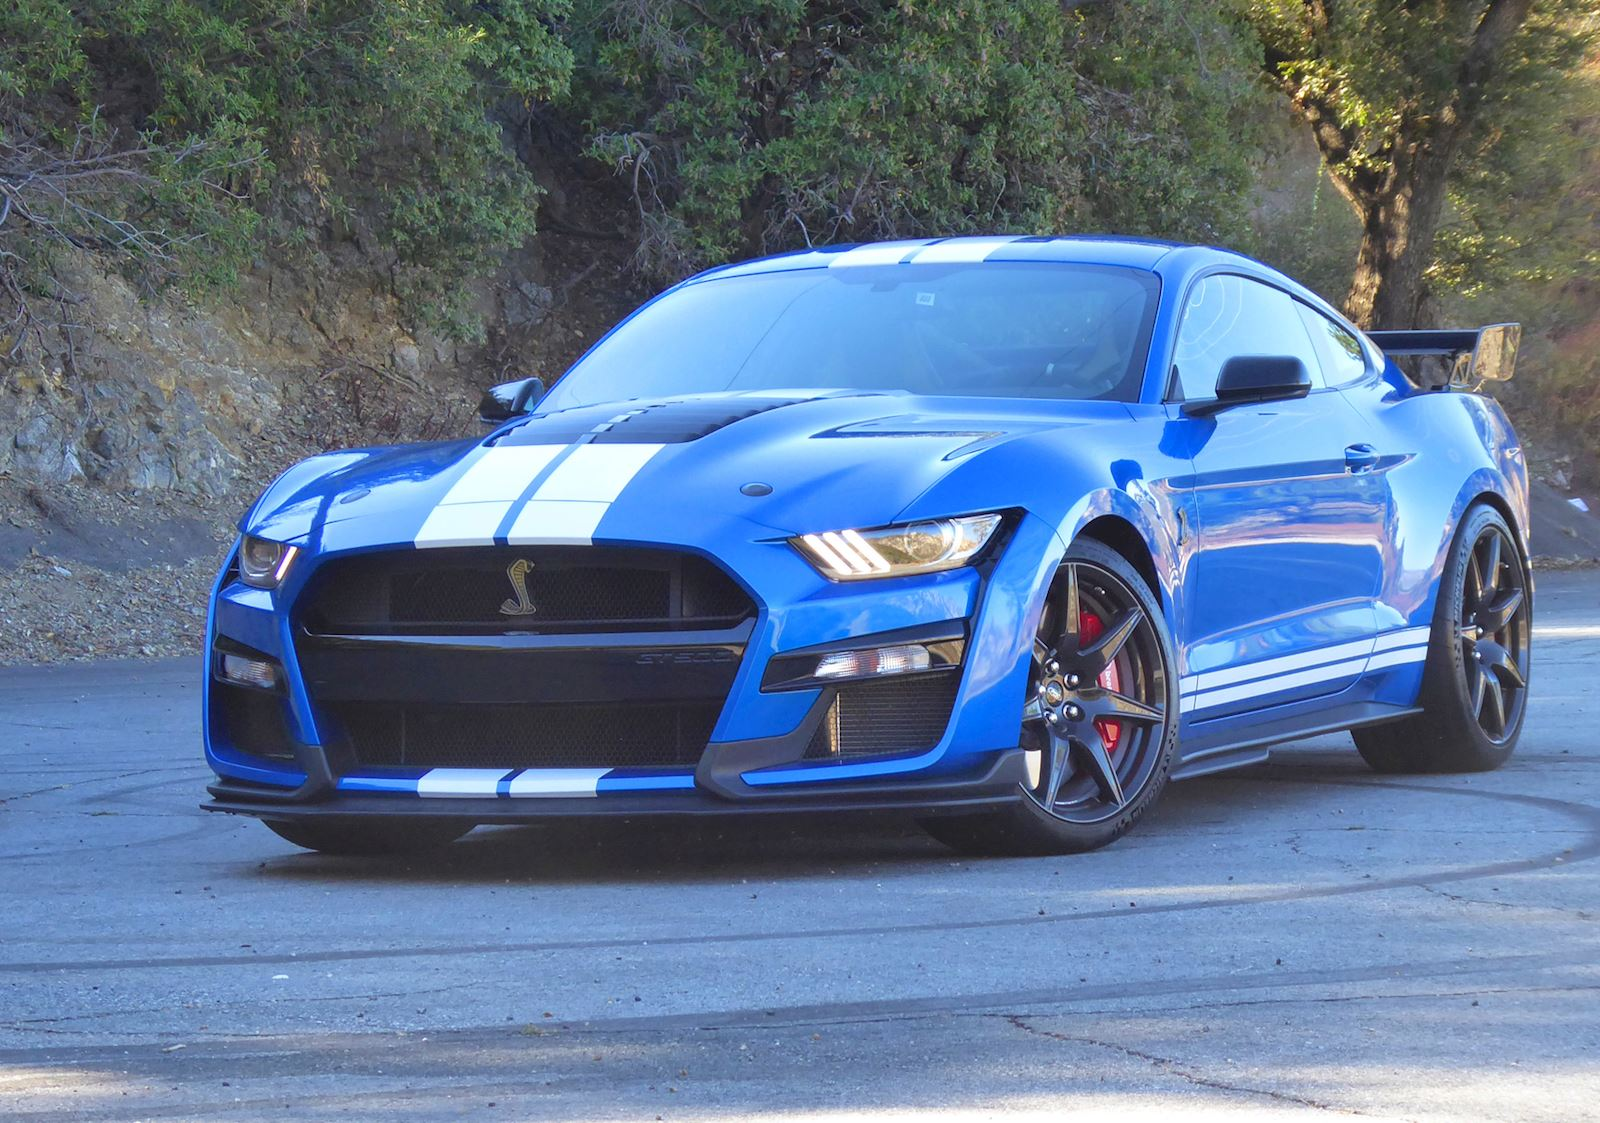 2020 Ford Mustang Shelby GT500 Test Drive